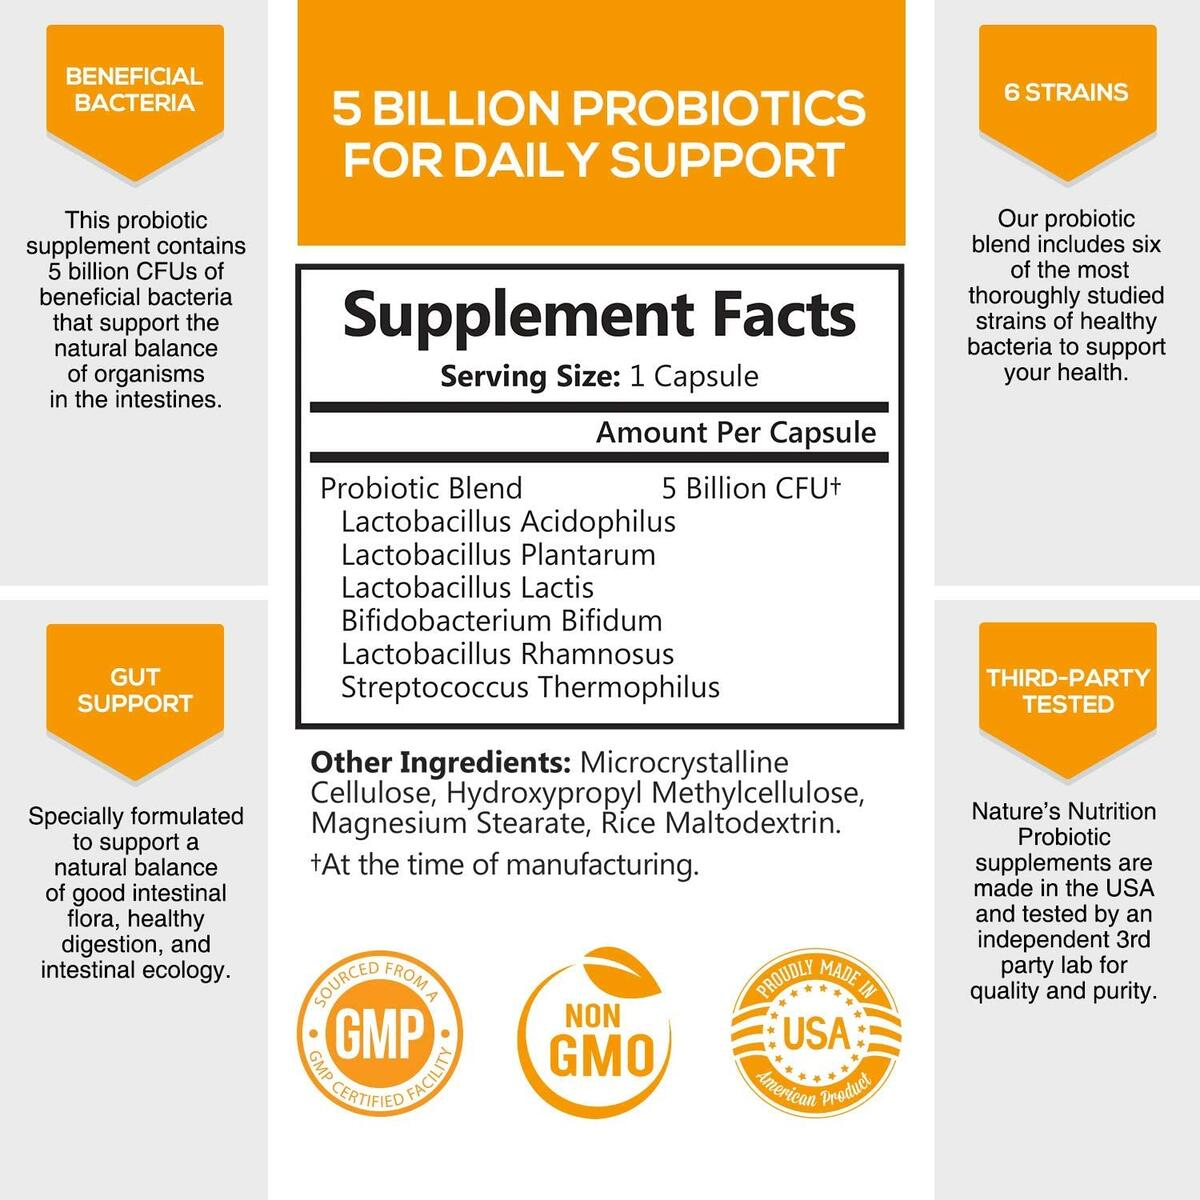 Probiotics Extra Strength Daily Probiotic 5 Billion CFU - Shelf Stable Probiotic for Digestive Health - Made in USA - Acidophilus Supplement for Women & Men, Non-GMO - 60 Capsules